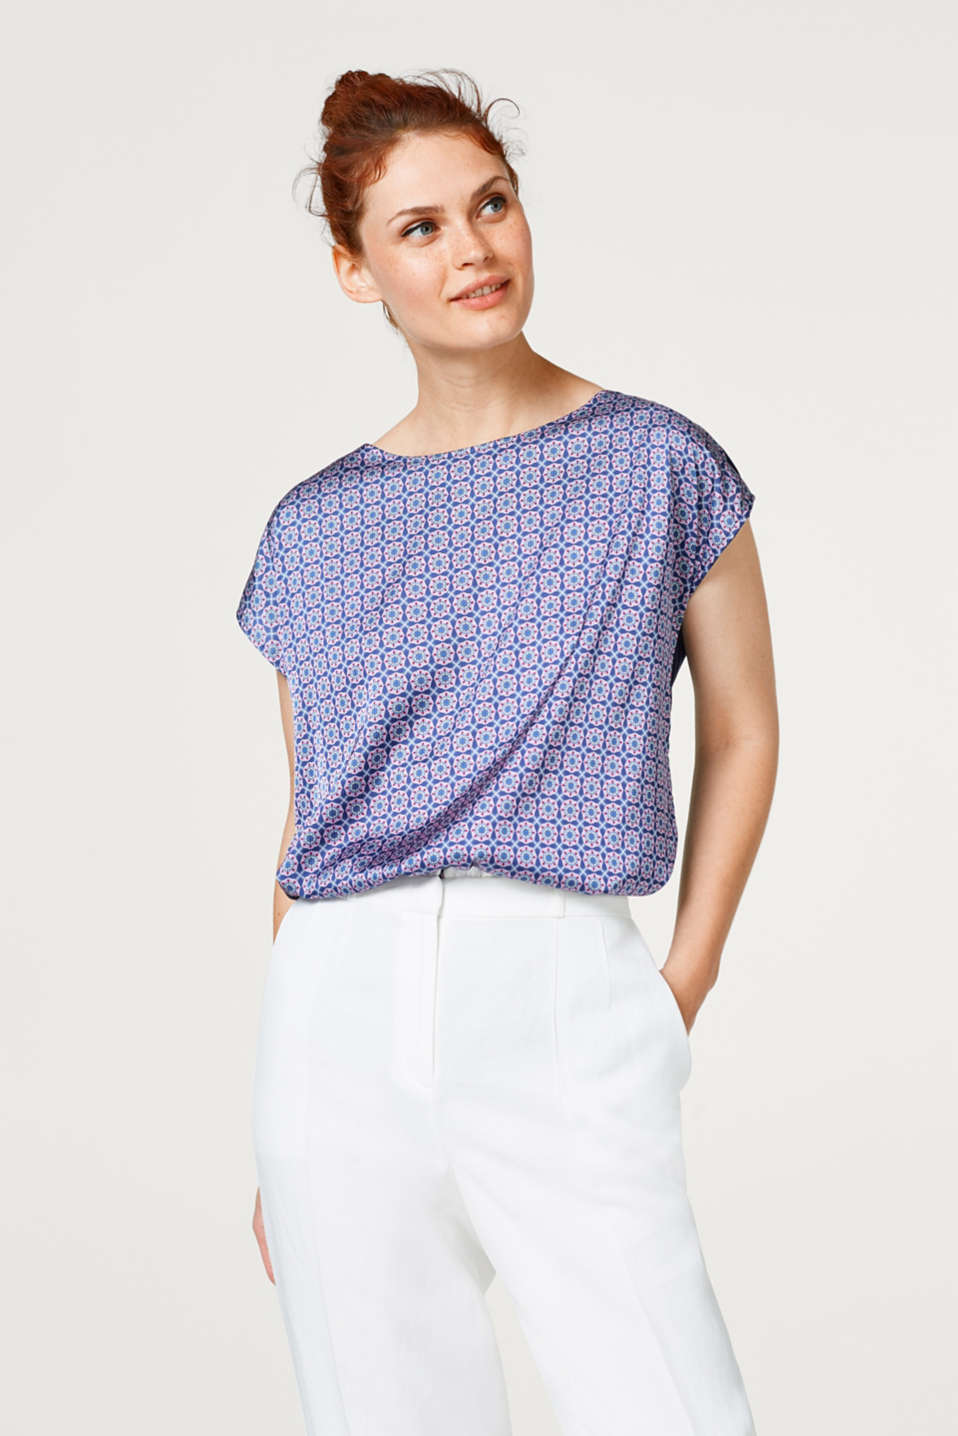 Esprit - Fabric blend top with a retro print